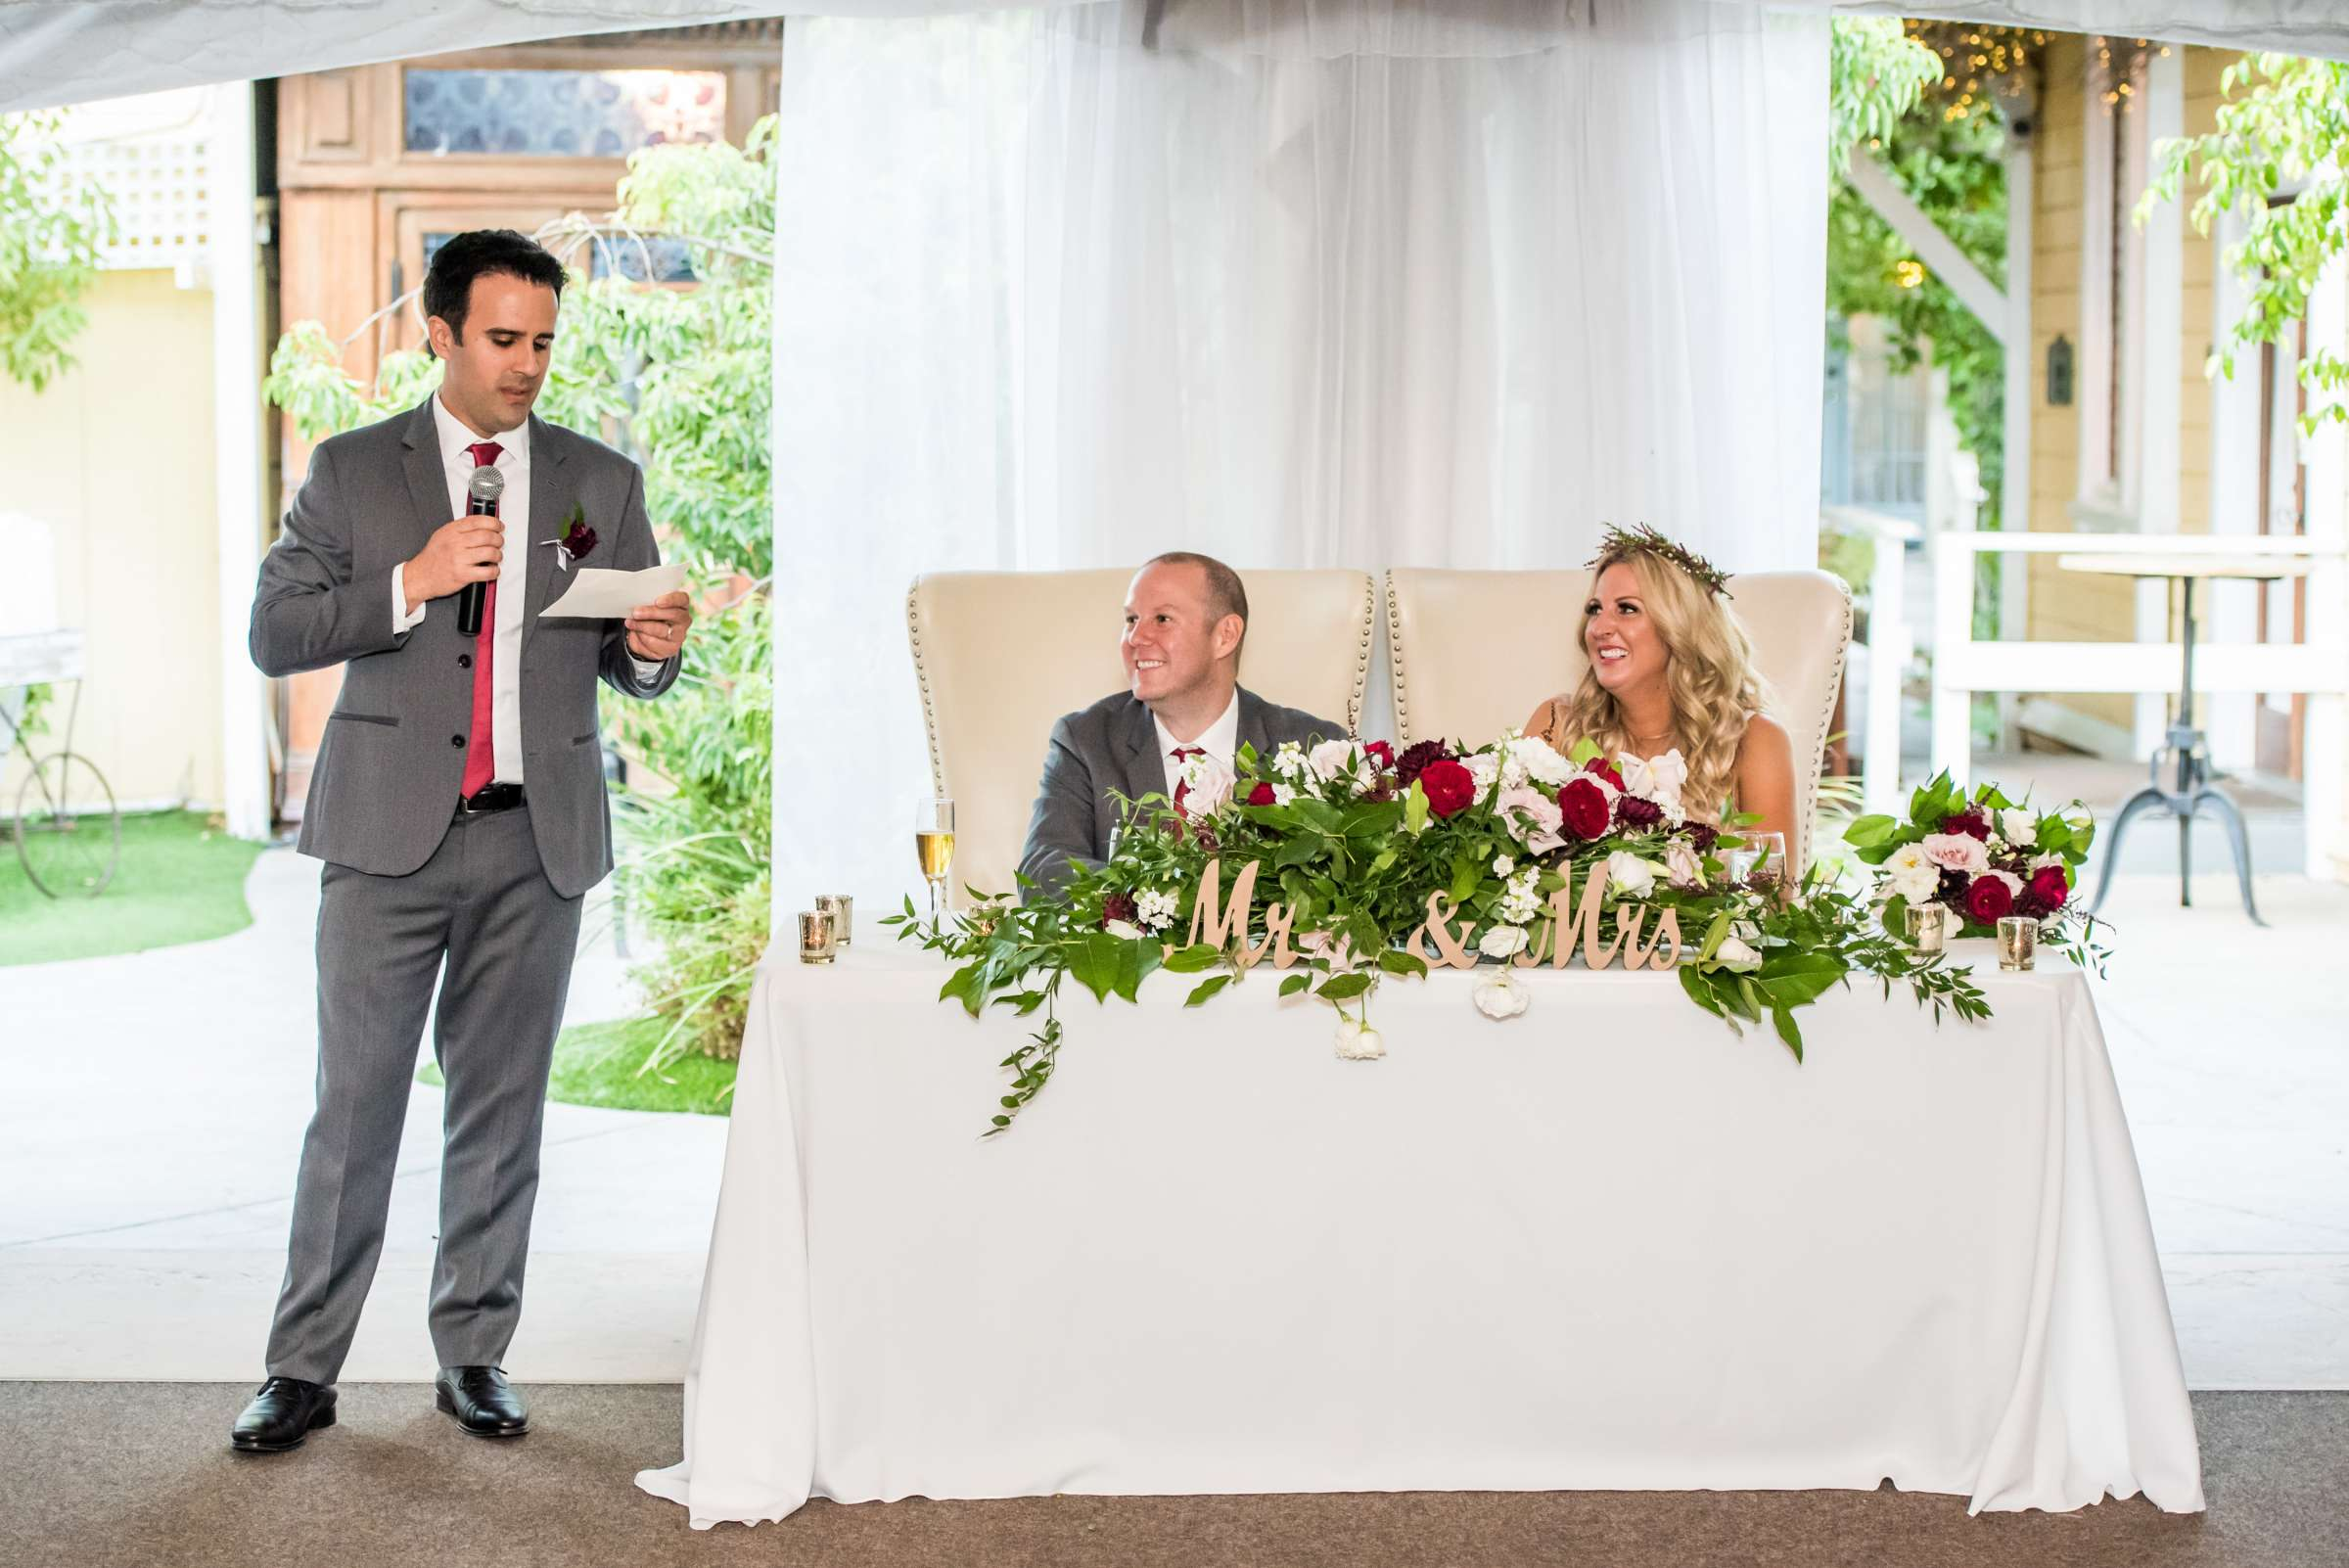 Twin Oaks House & Gardens Wedding Estate Wedding, Brittany and Sean Wedding Photo #115 by True Photography